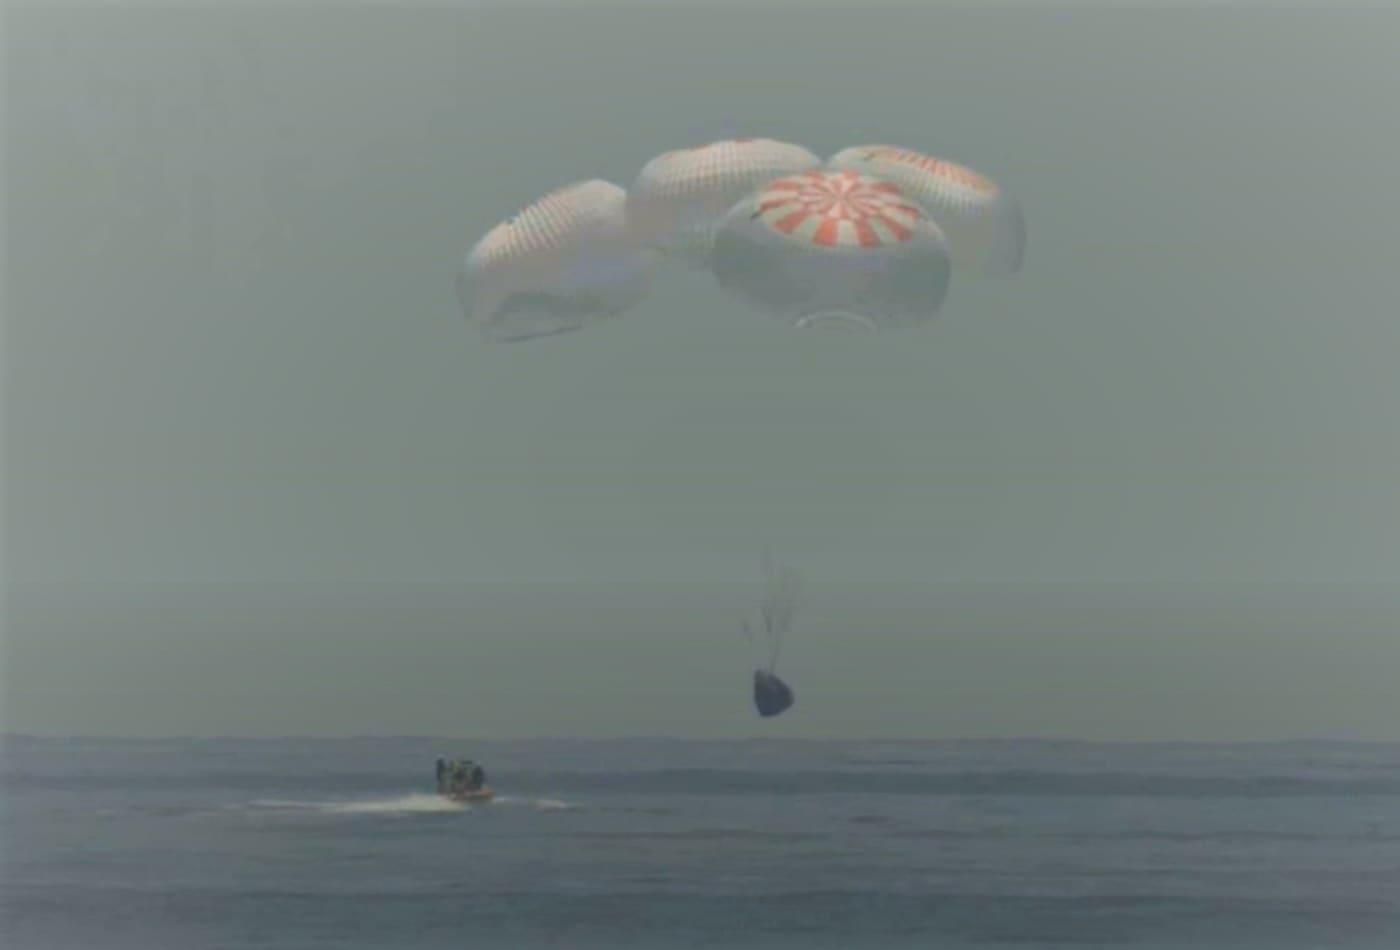 SpaceX's Crew Dragon splashes down in the Gulf of Mexico, completing a historic NASA mission